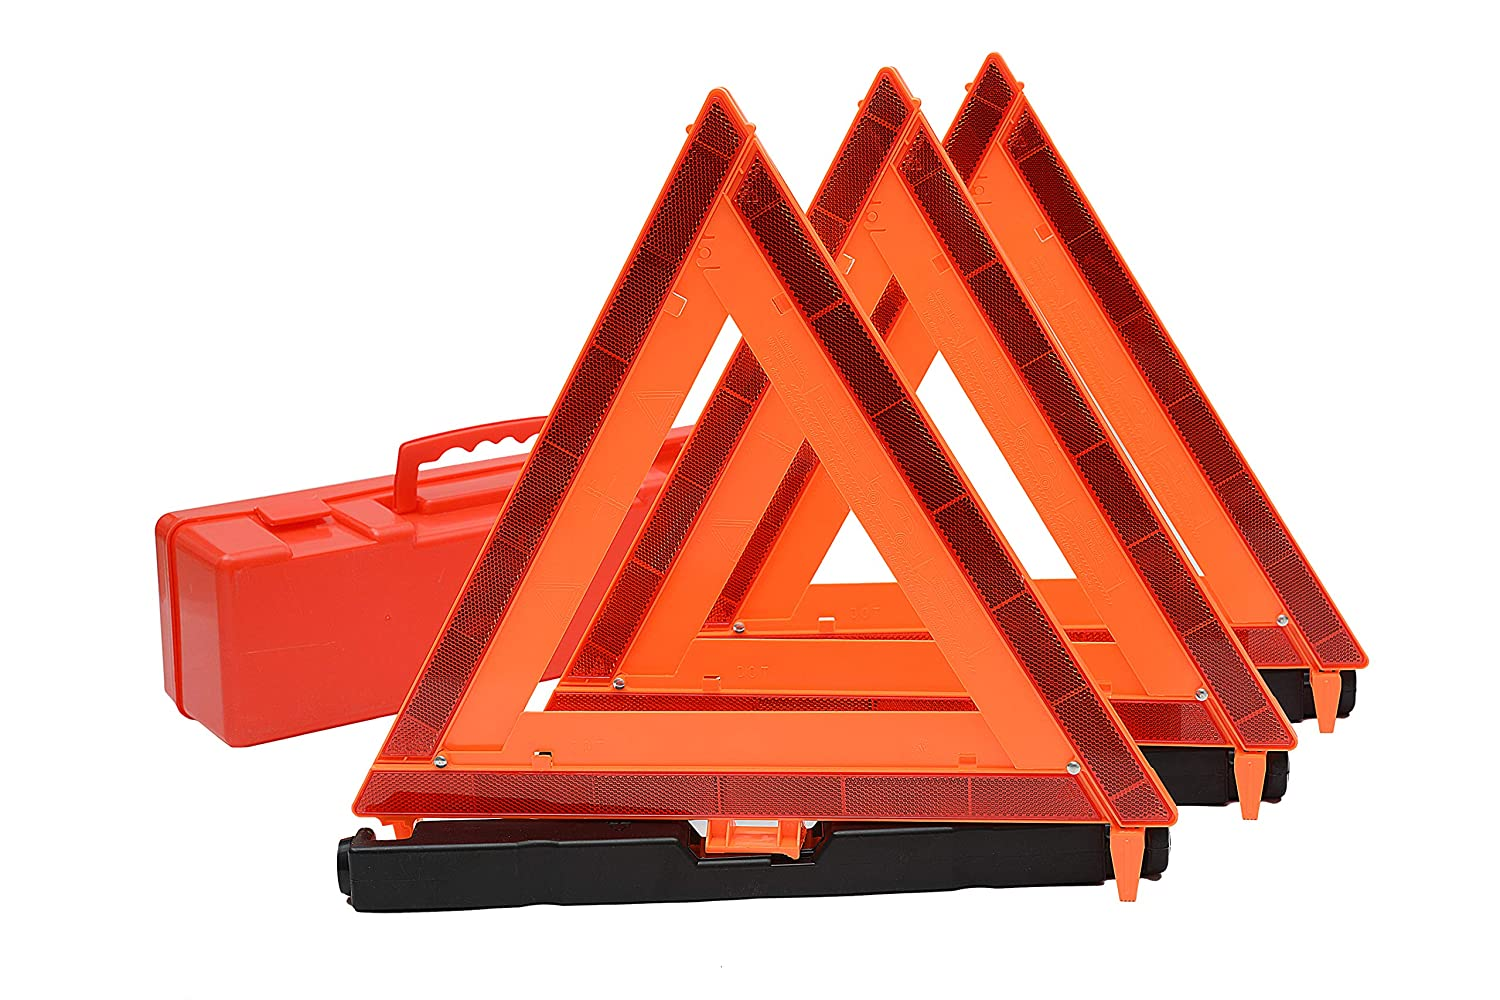 CJ Safety Reflective Emergency Warning Triangle - DOT Approved 3PK (1 Set (3 pcs))